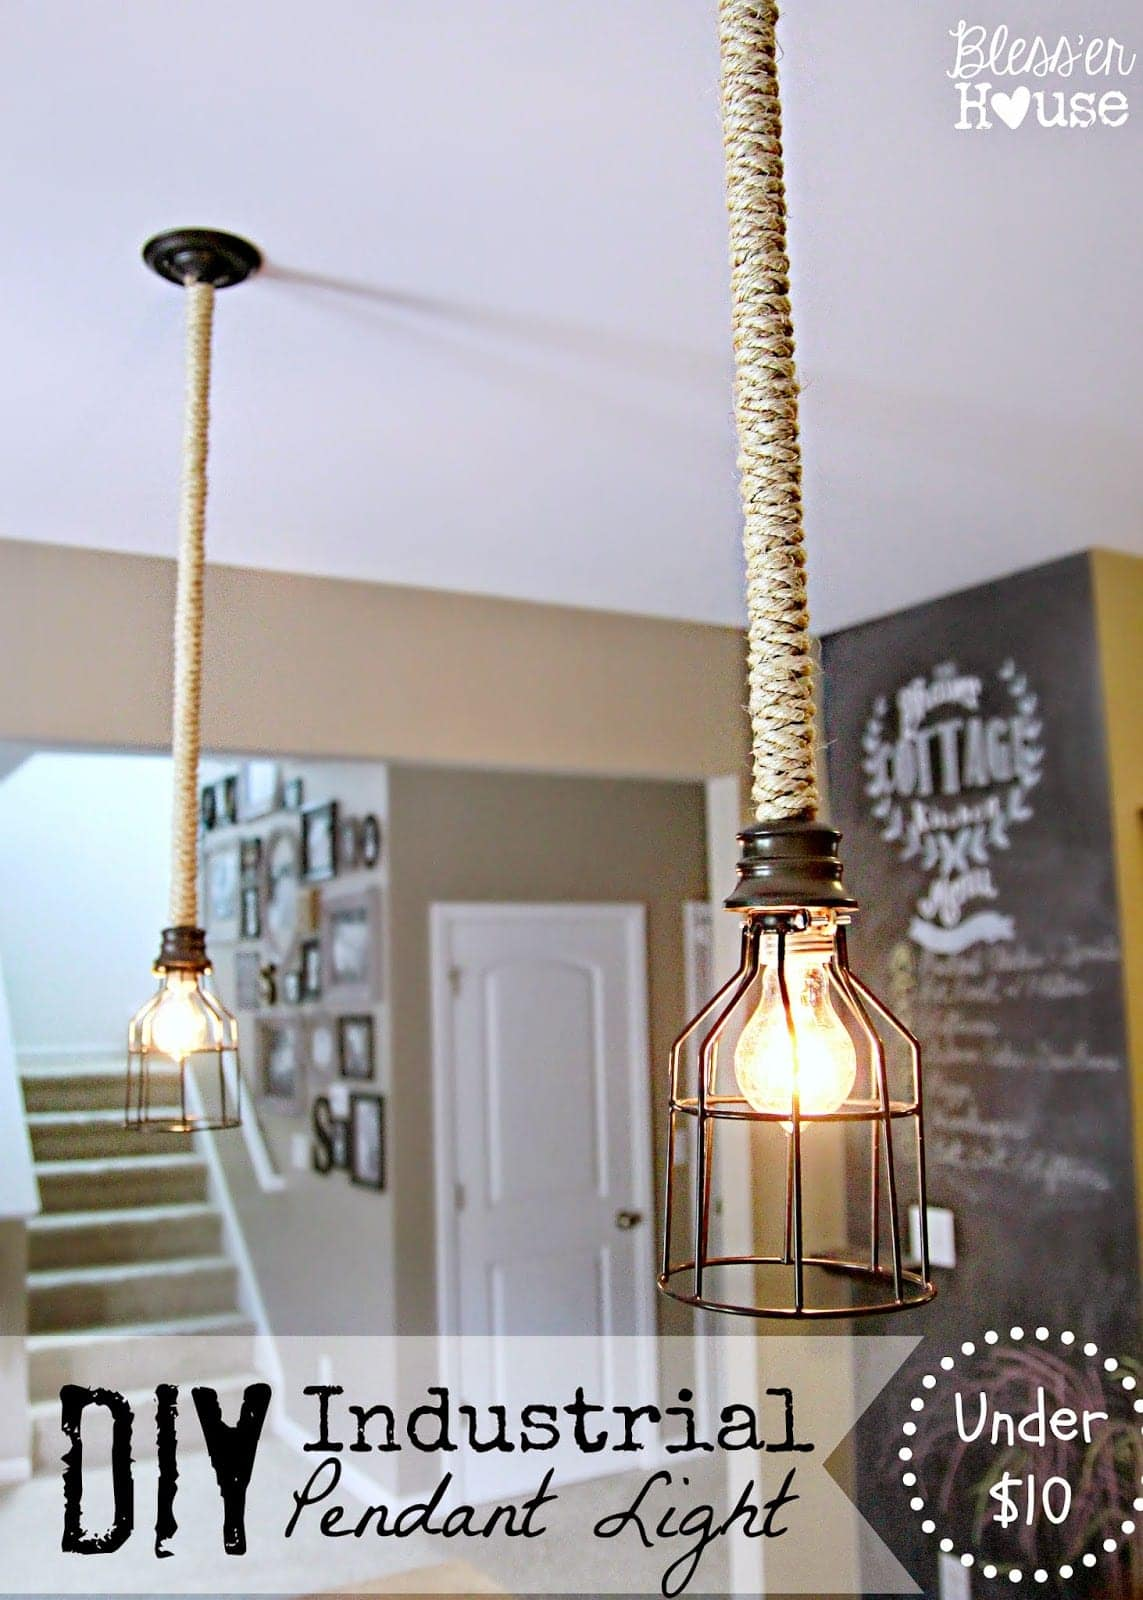 Diy industrial pendant light for under 10 blesser house aloadofball